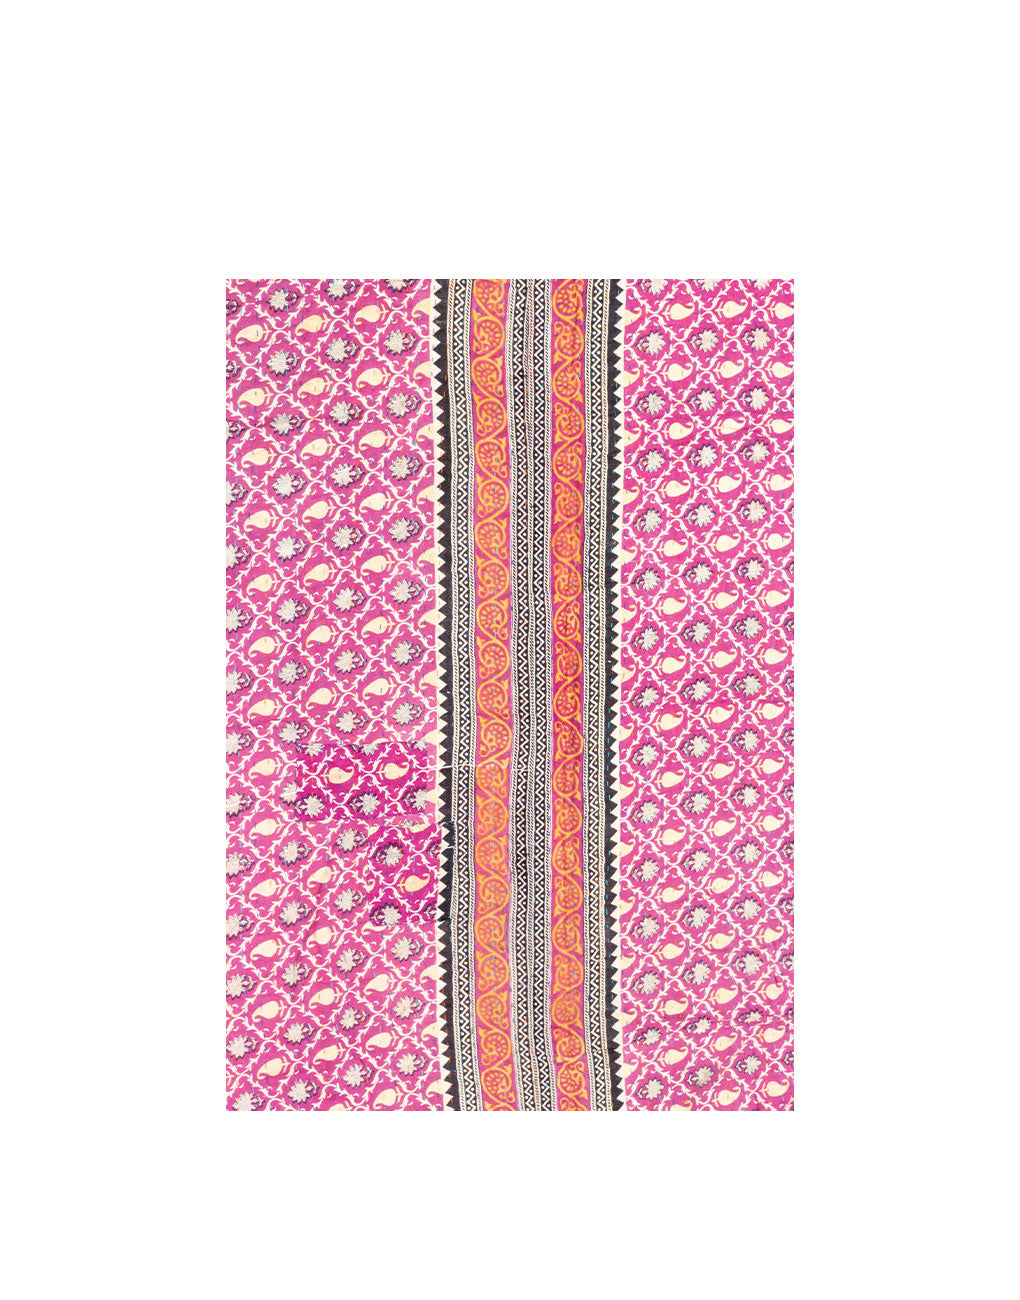 Small Kantha Quilt - No. 596 | The Little Market